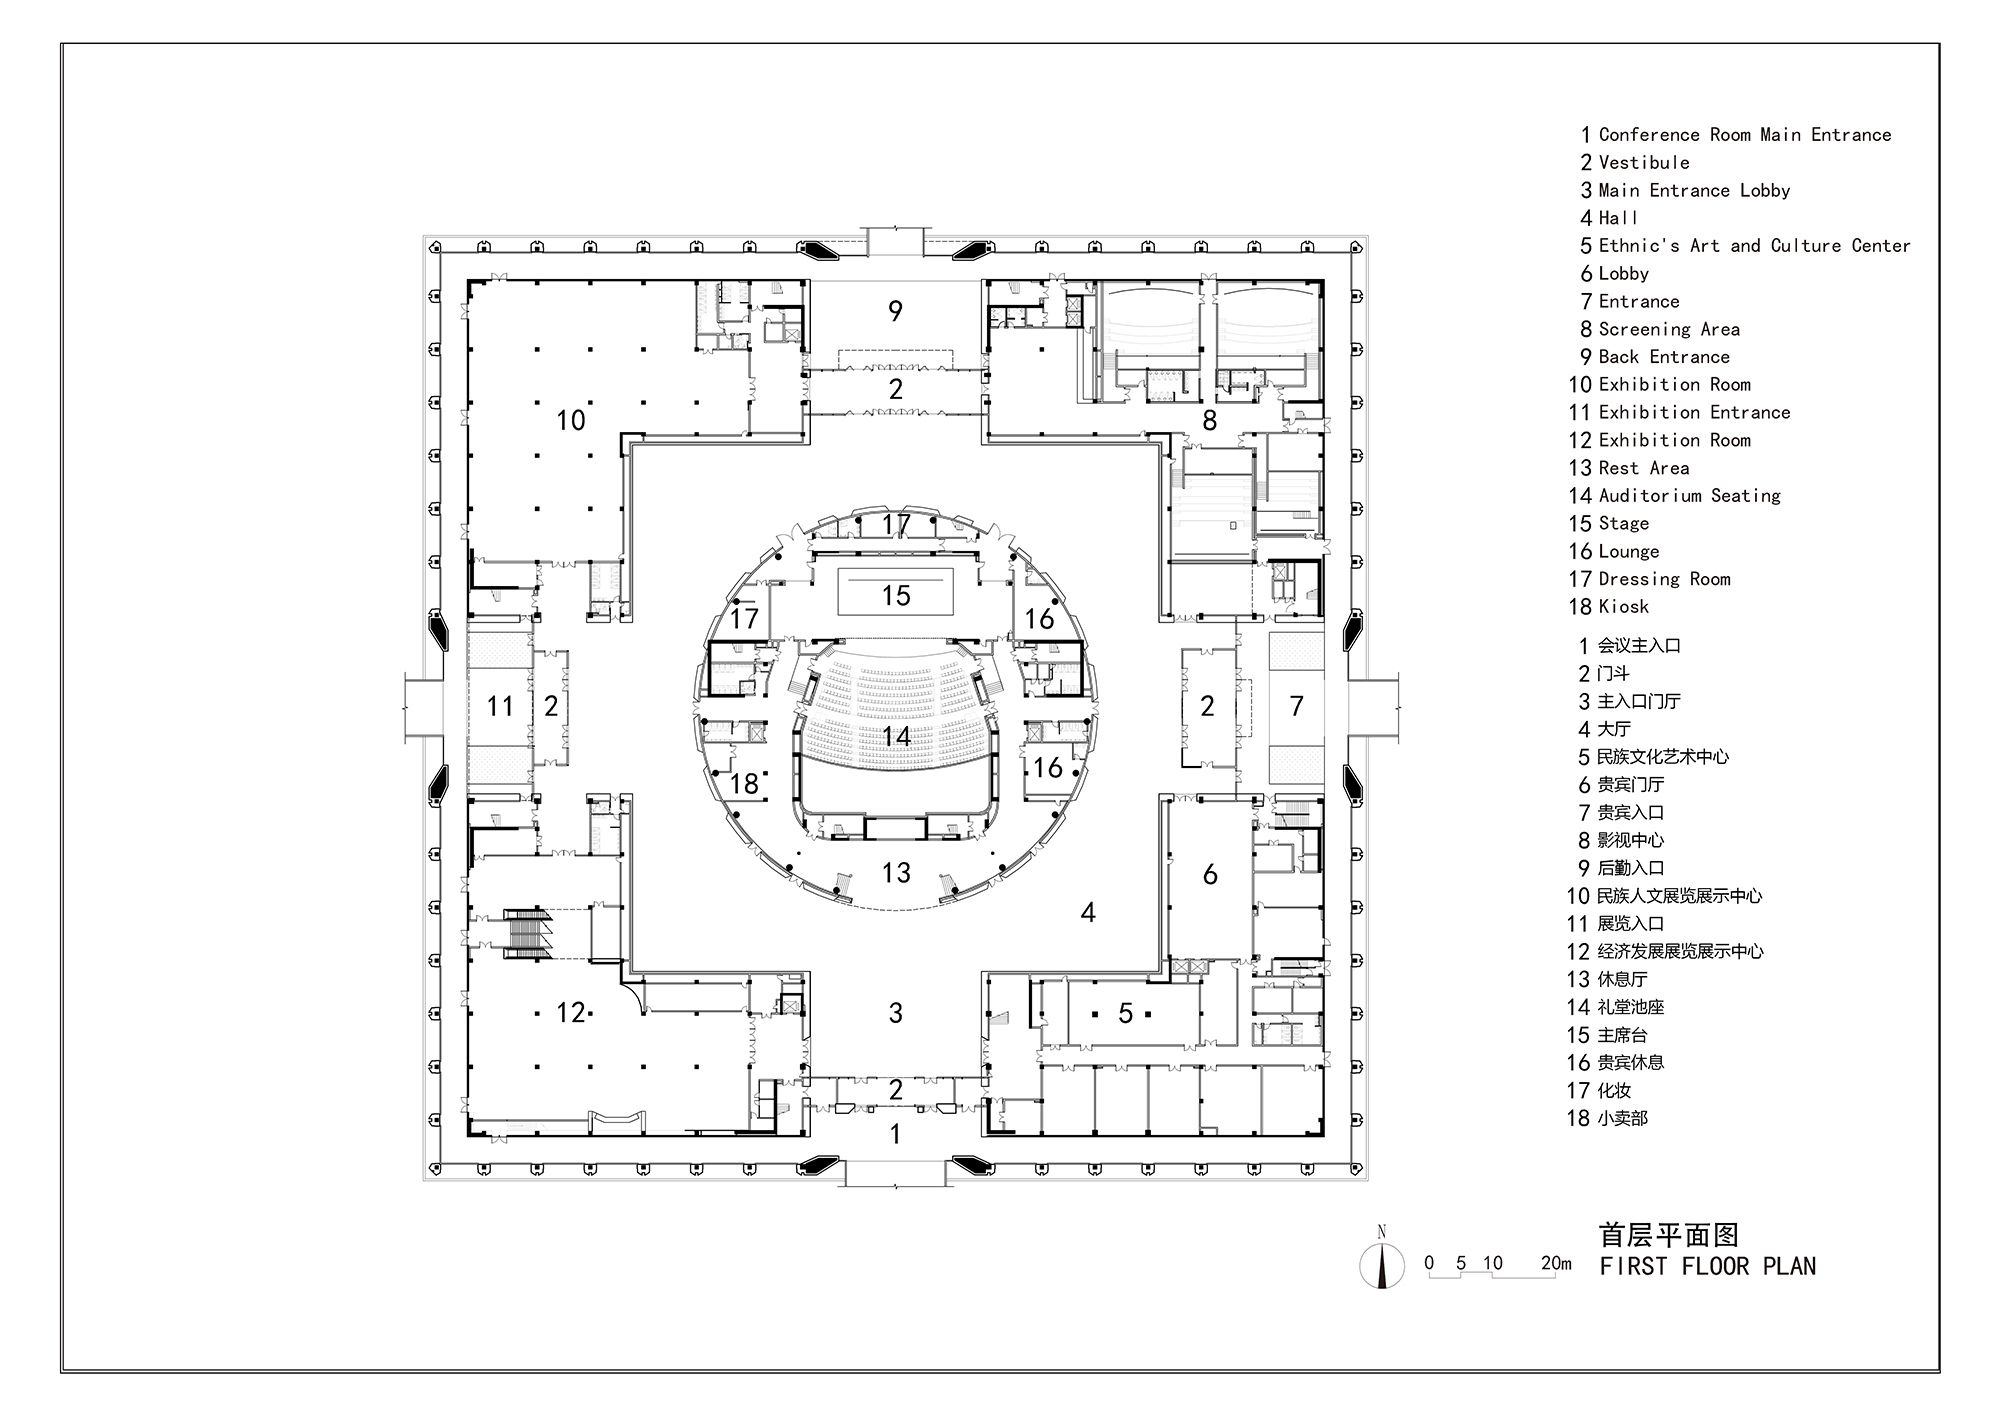 Gallery Of Da Chang Muslim Cultural Center Architectural